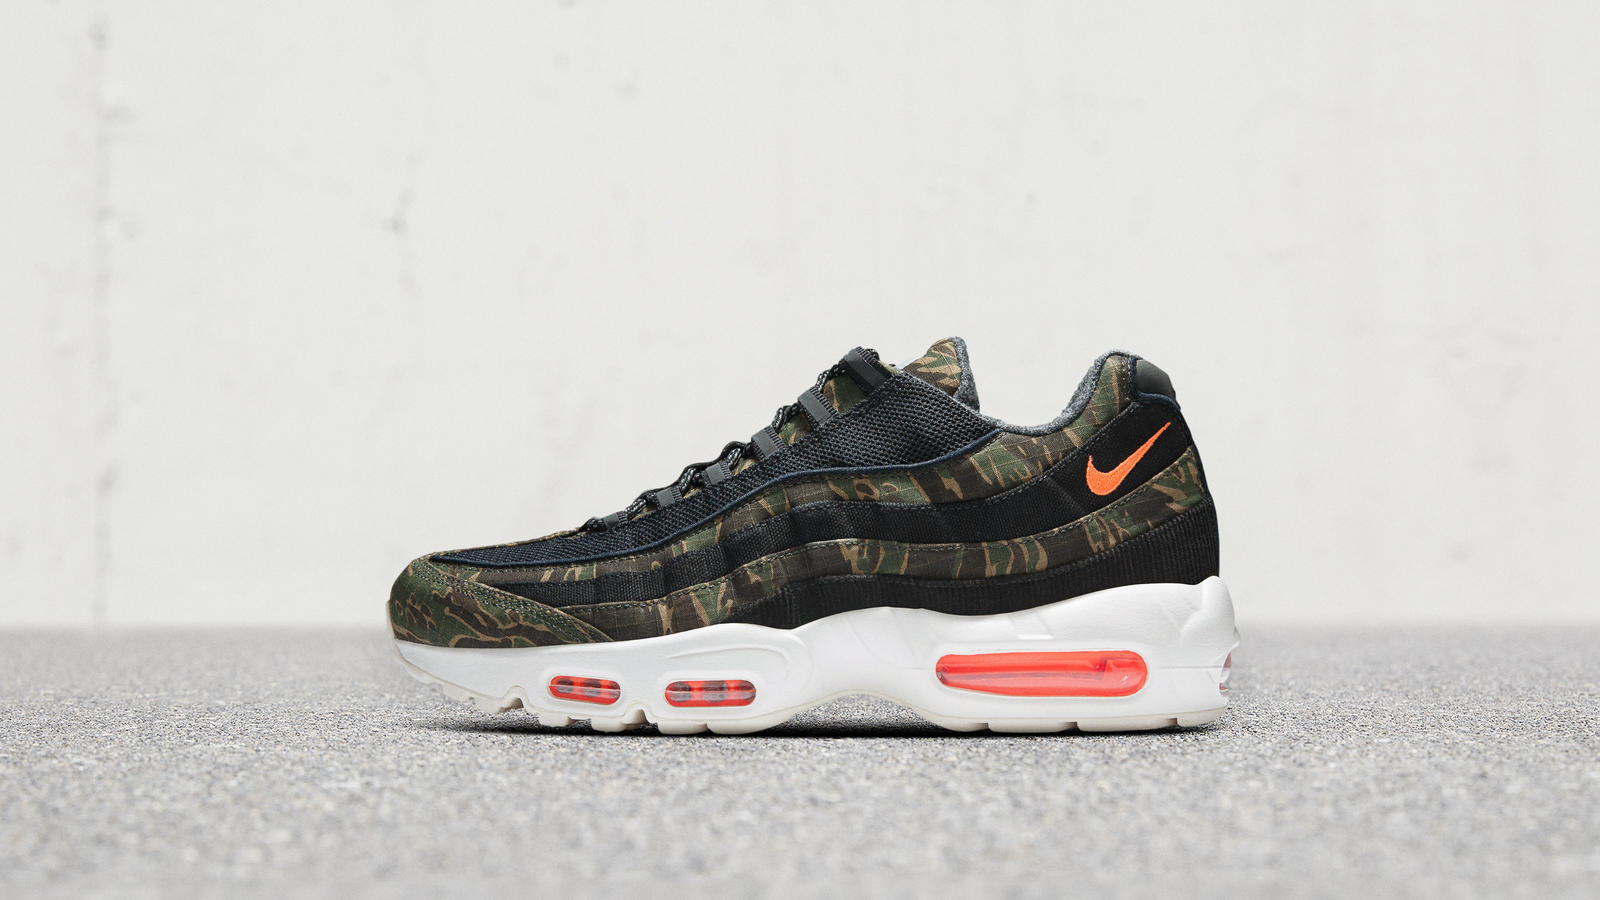 Featuredfootwear nsw nikexcarhartt 10.12.18 690 hd 1600